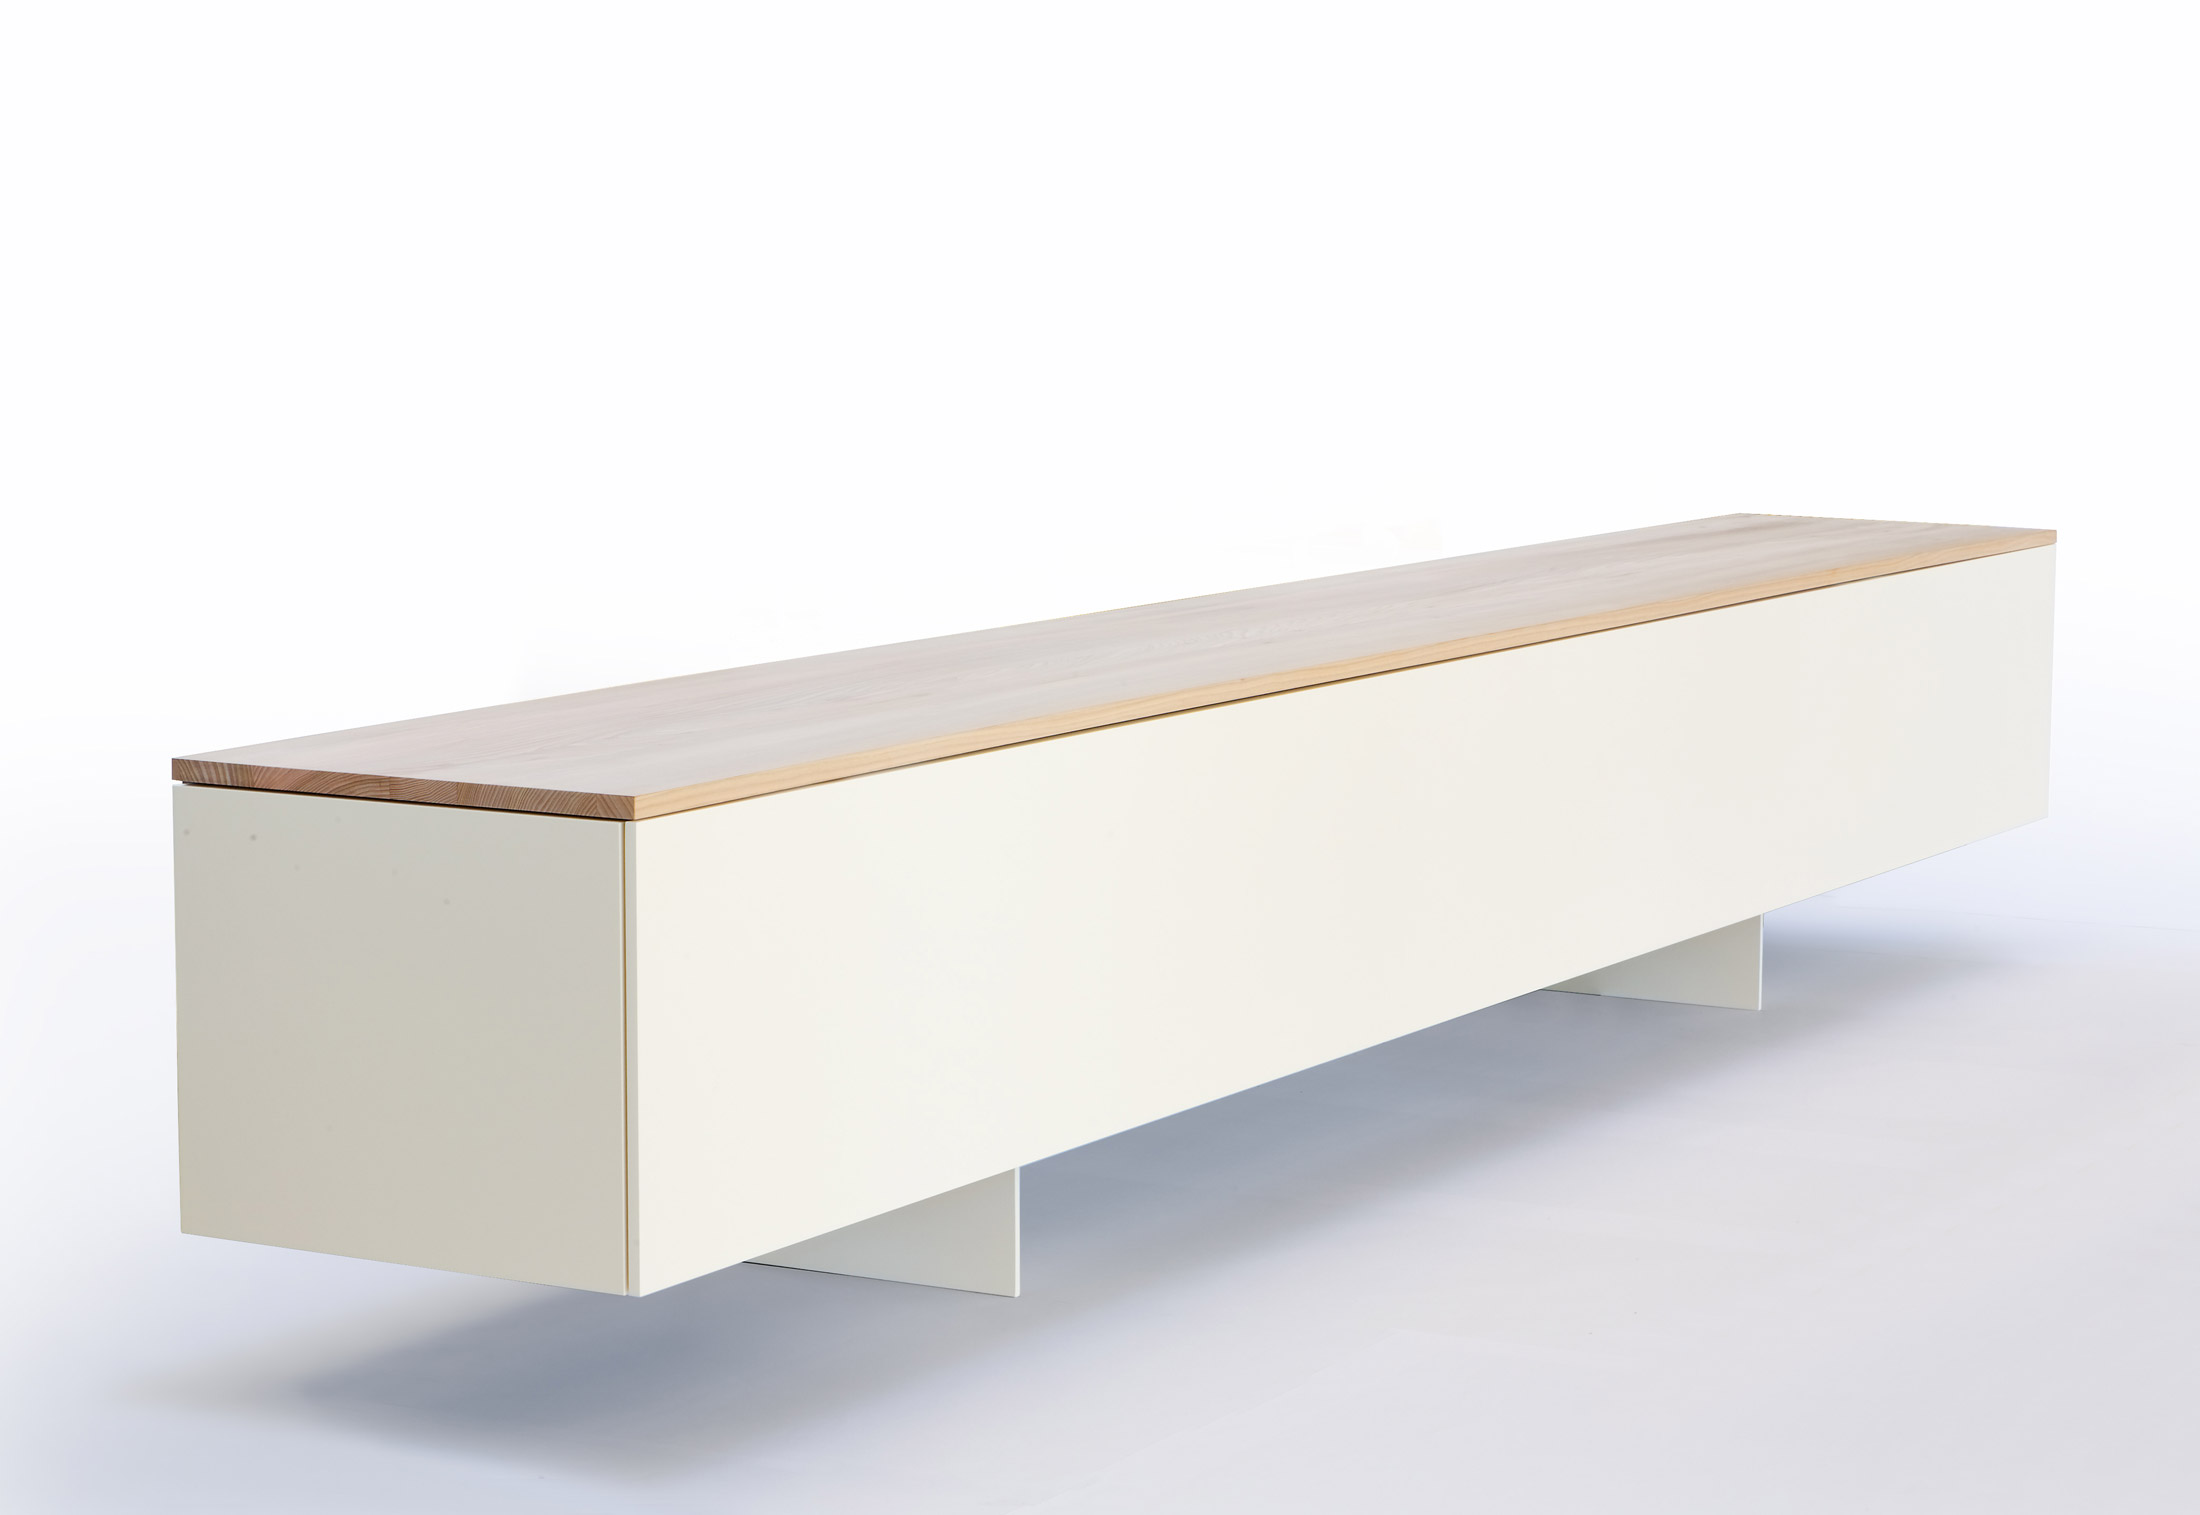 Xl sideboard by zoom by mobimex stylepark for Sideboard xl